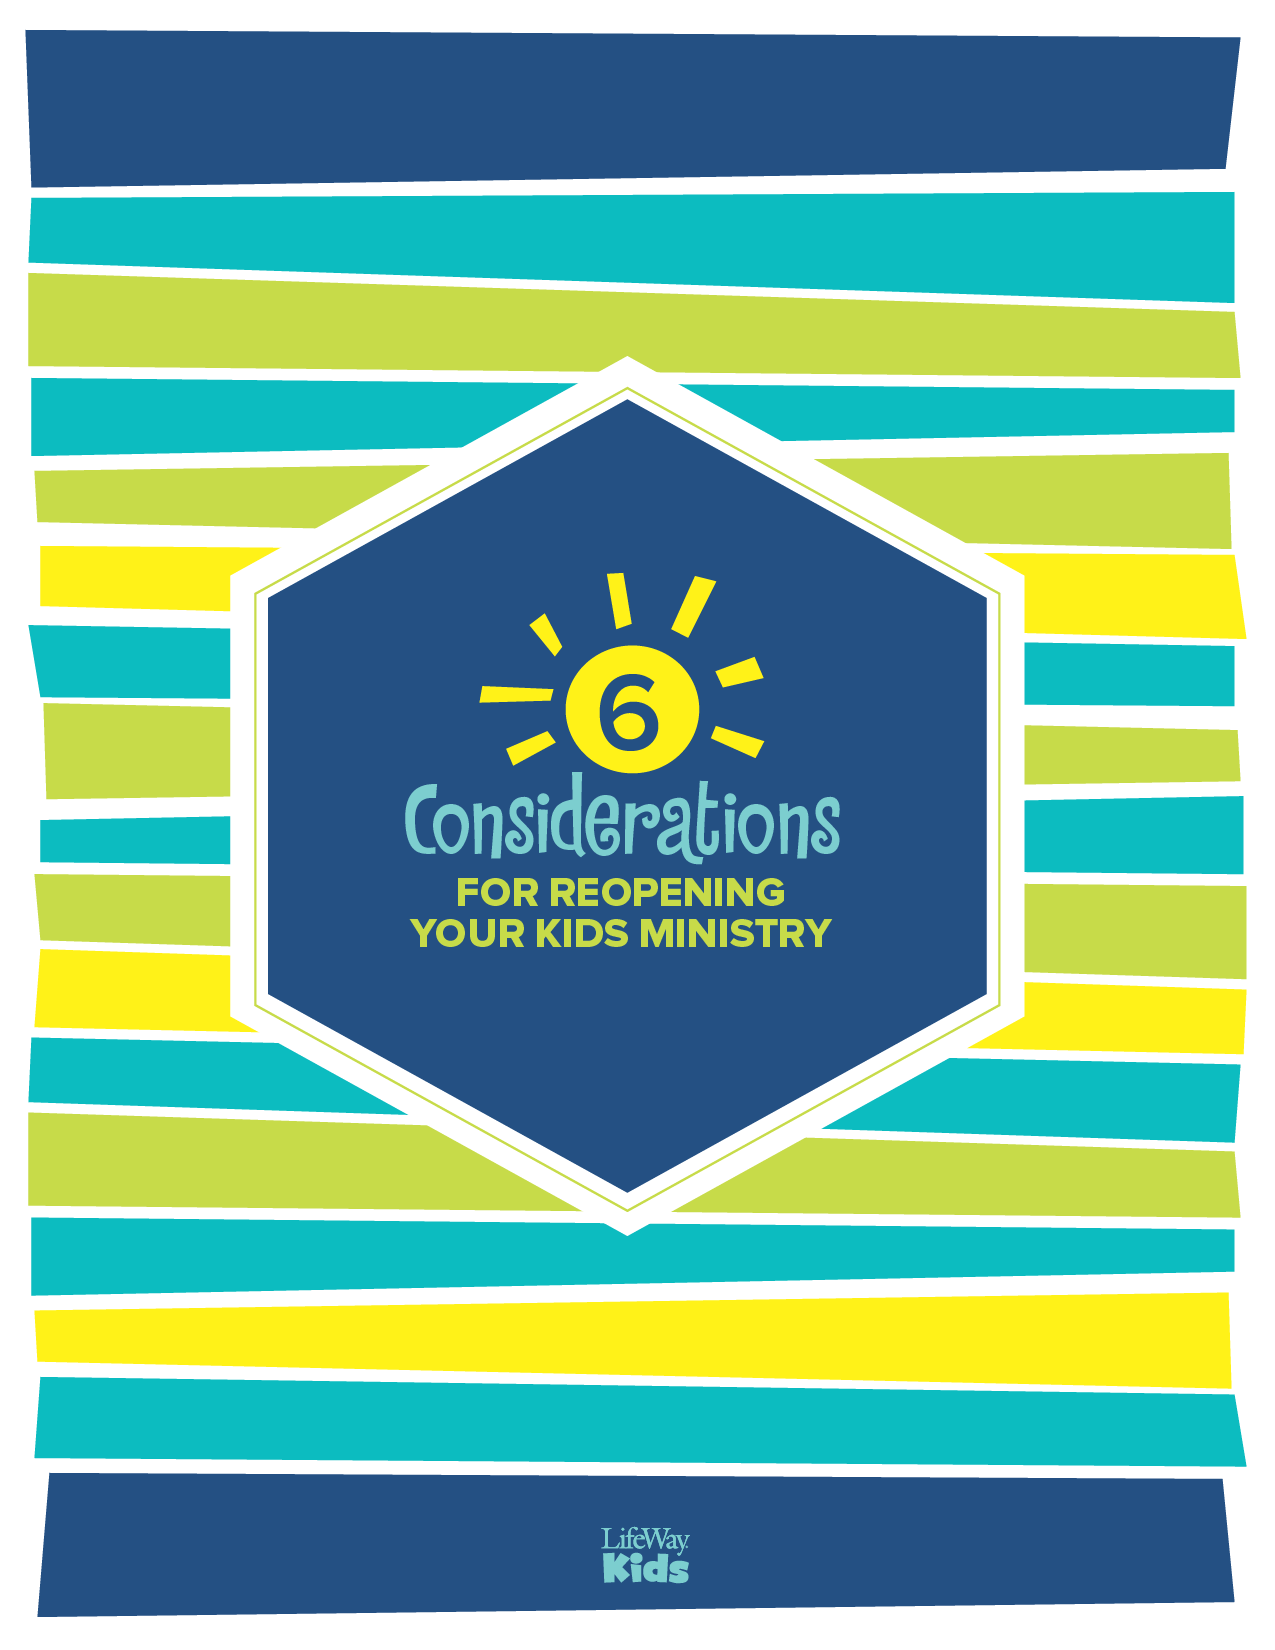 6 Considerations for Reopening Your Kids Ministry